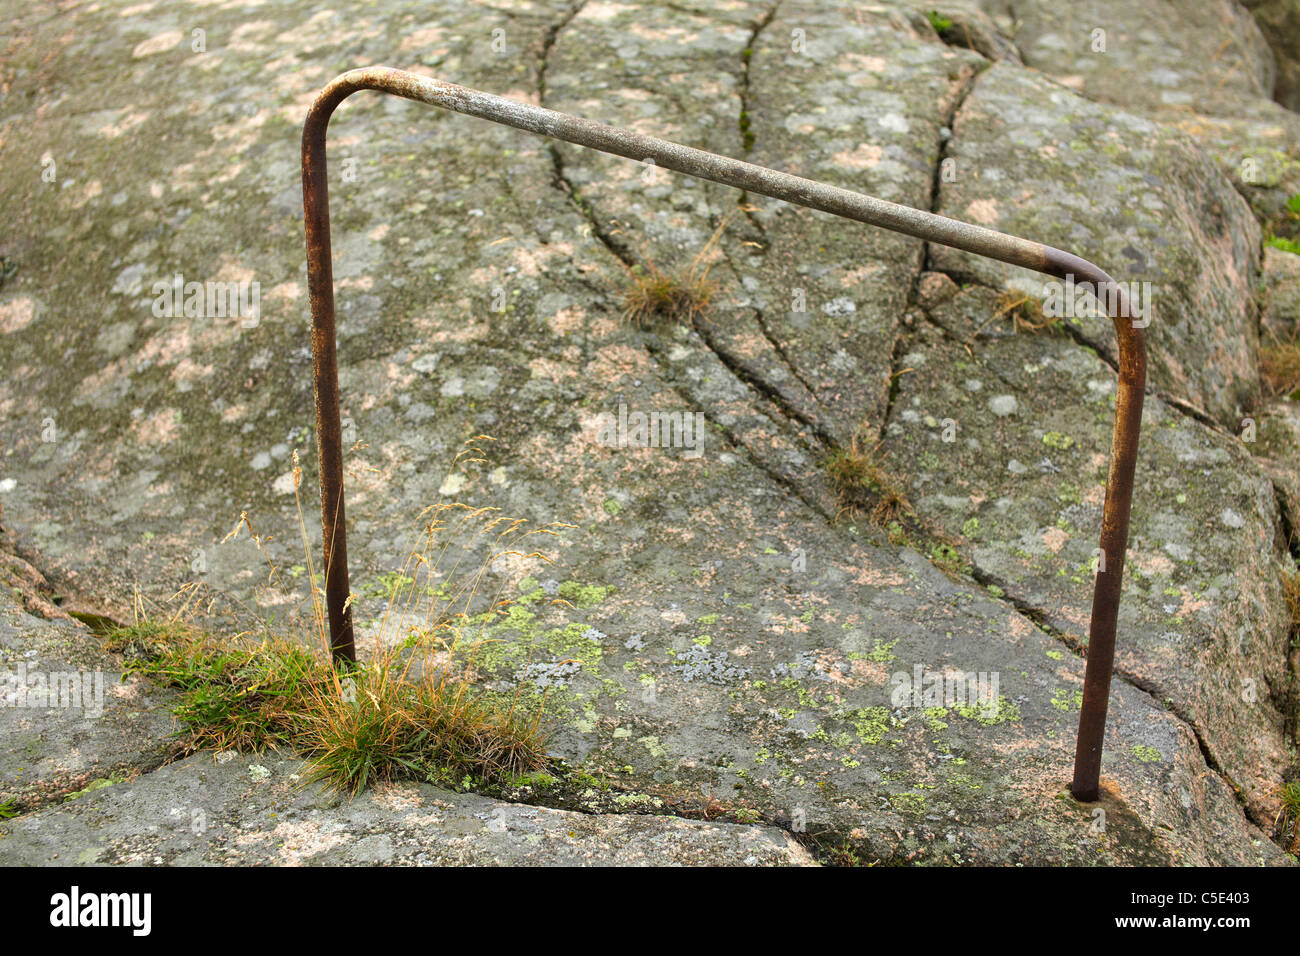 Close-up of a handrail on the rock - Stock Image